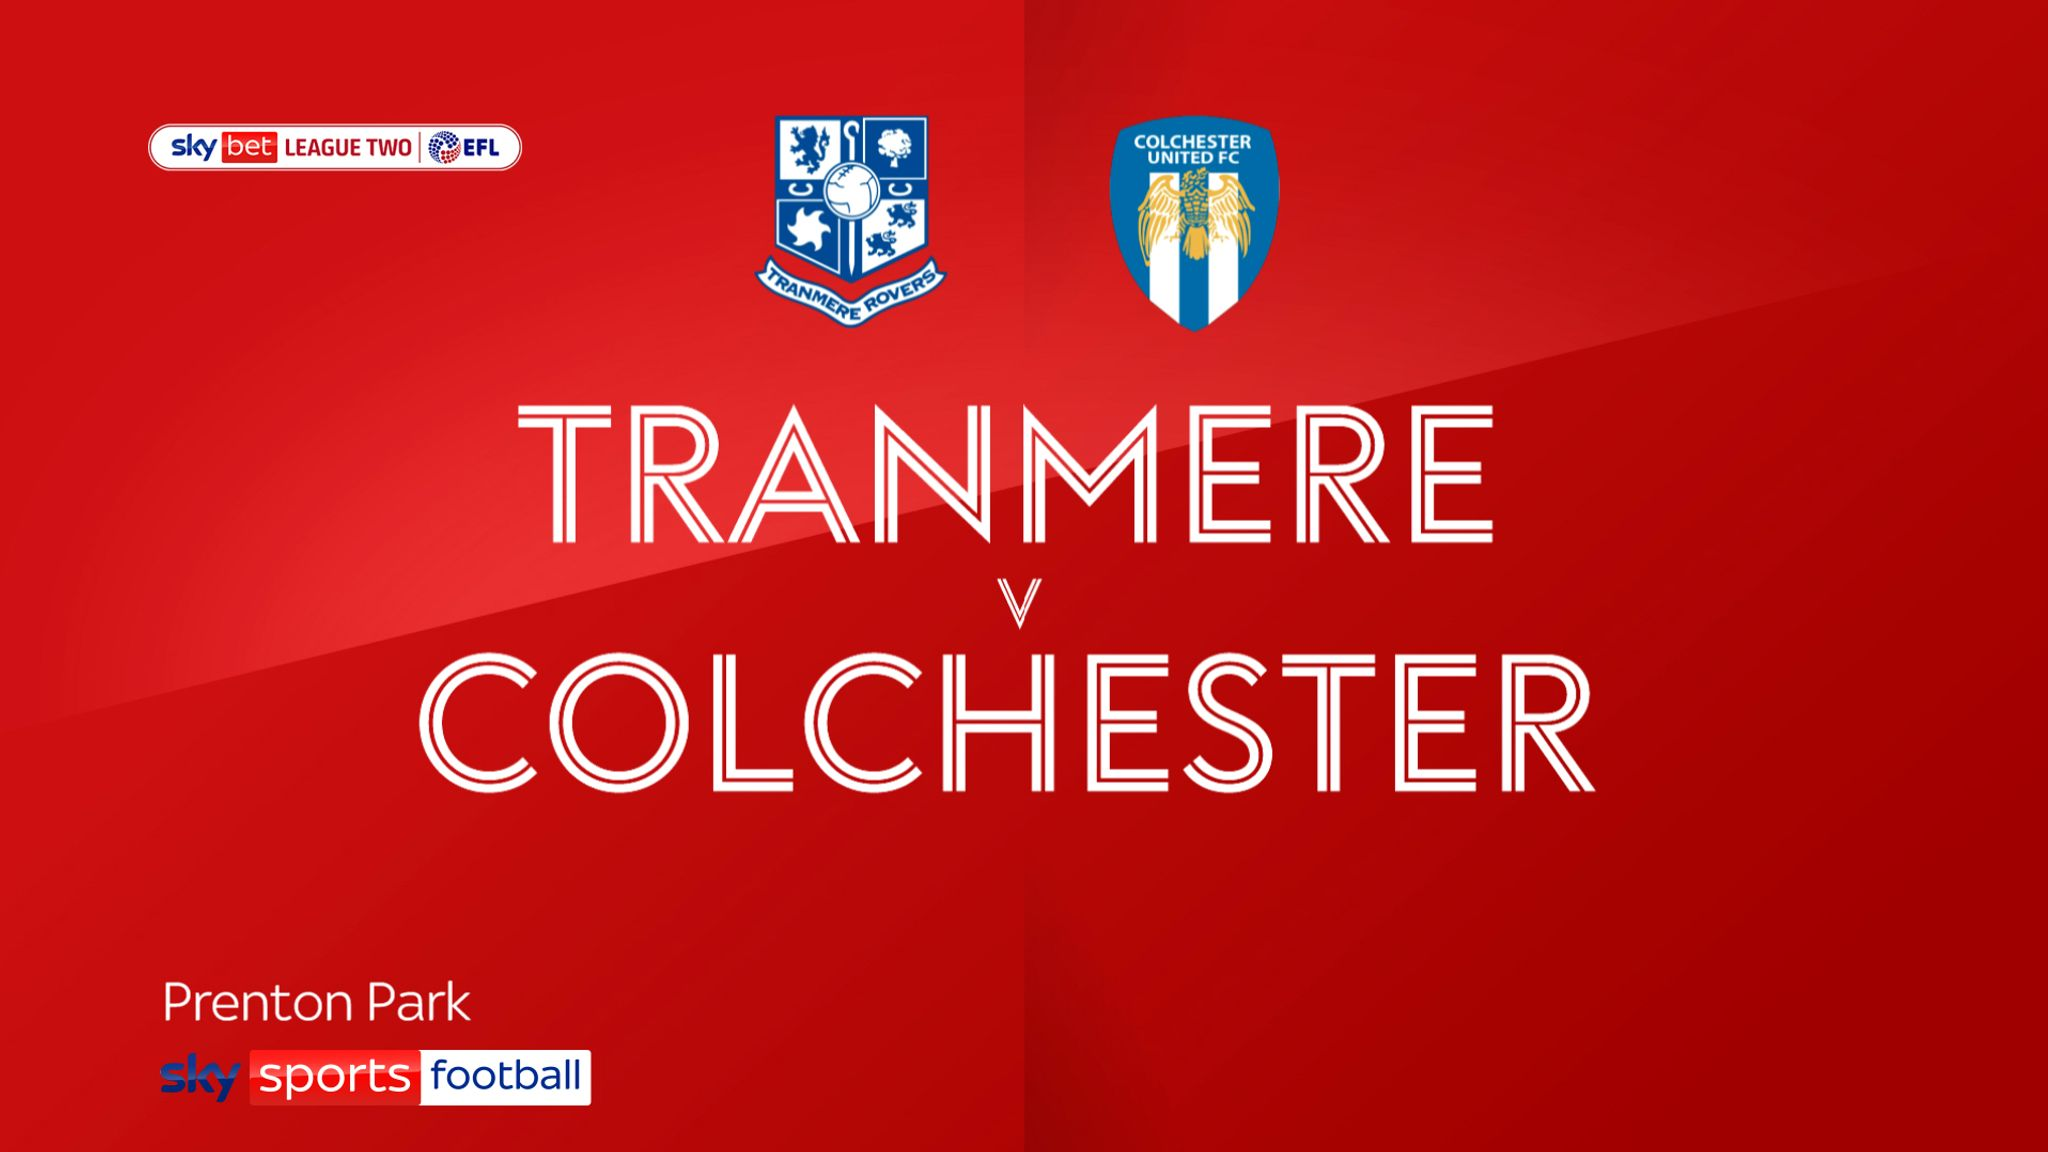 Tranmere 0-0 Colchester: Rovers reach play-offs despite stalemate at Prenton Park